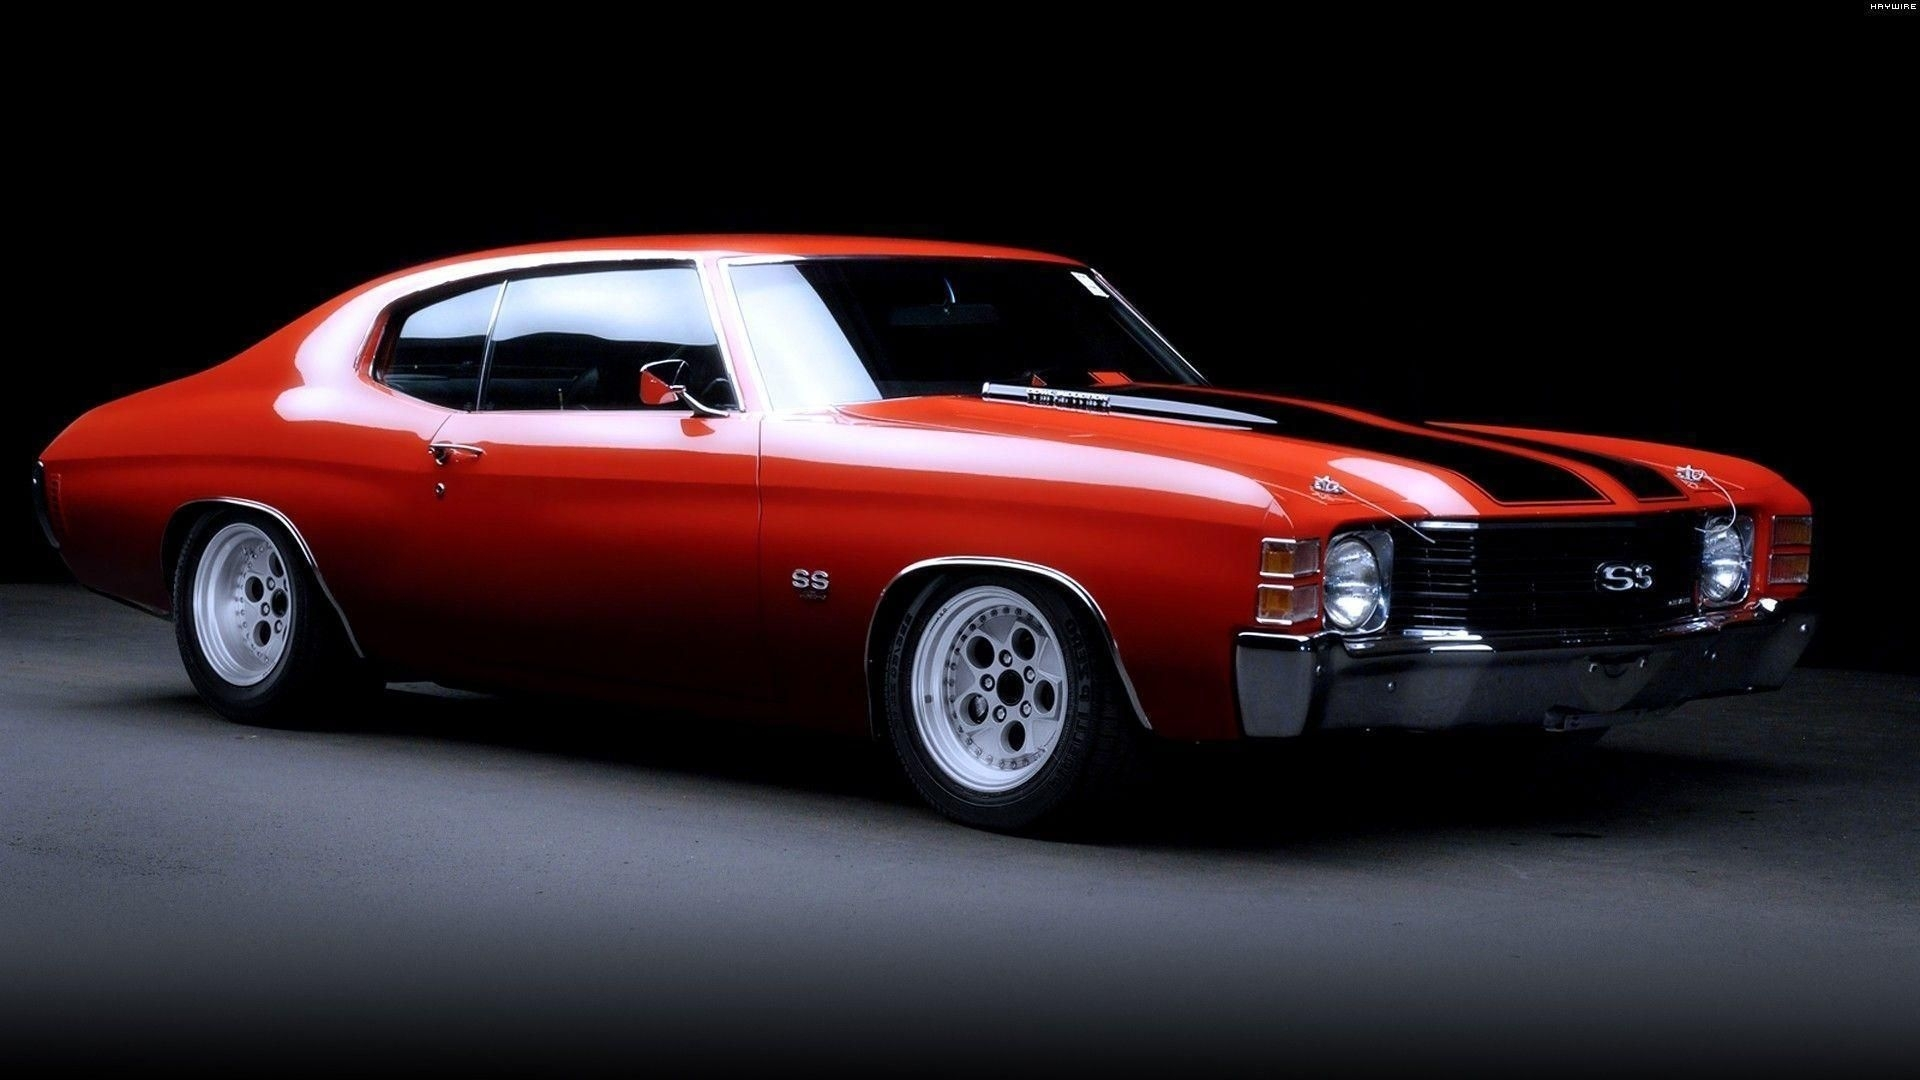 chevy muscle cars cool hd wallpapers picture on screencrot. | auto